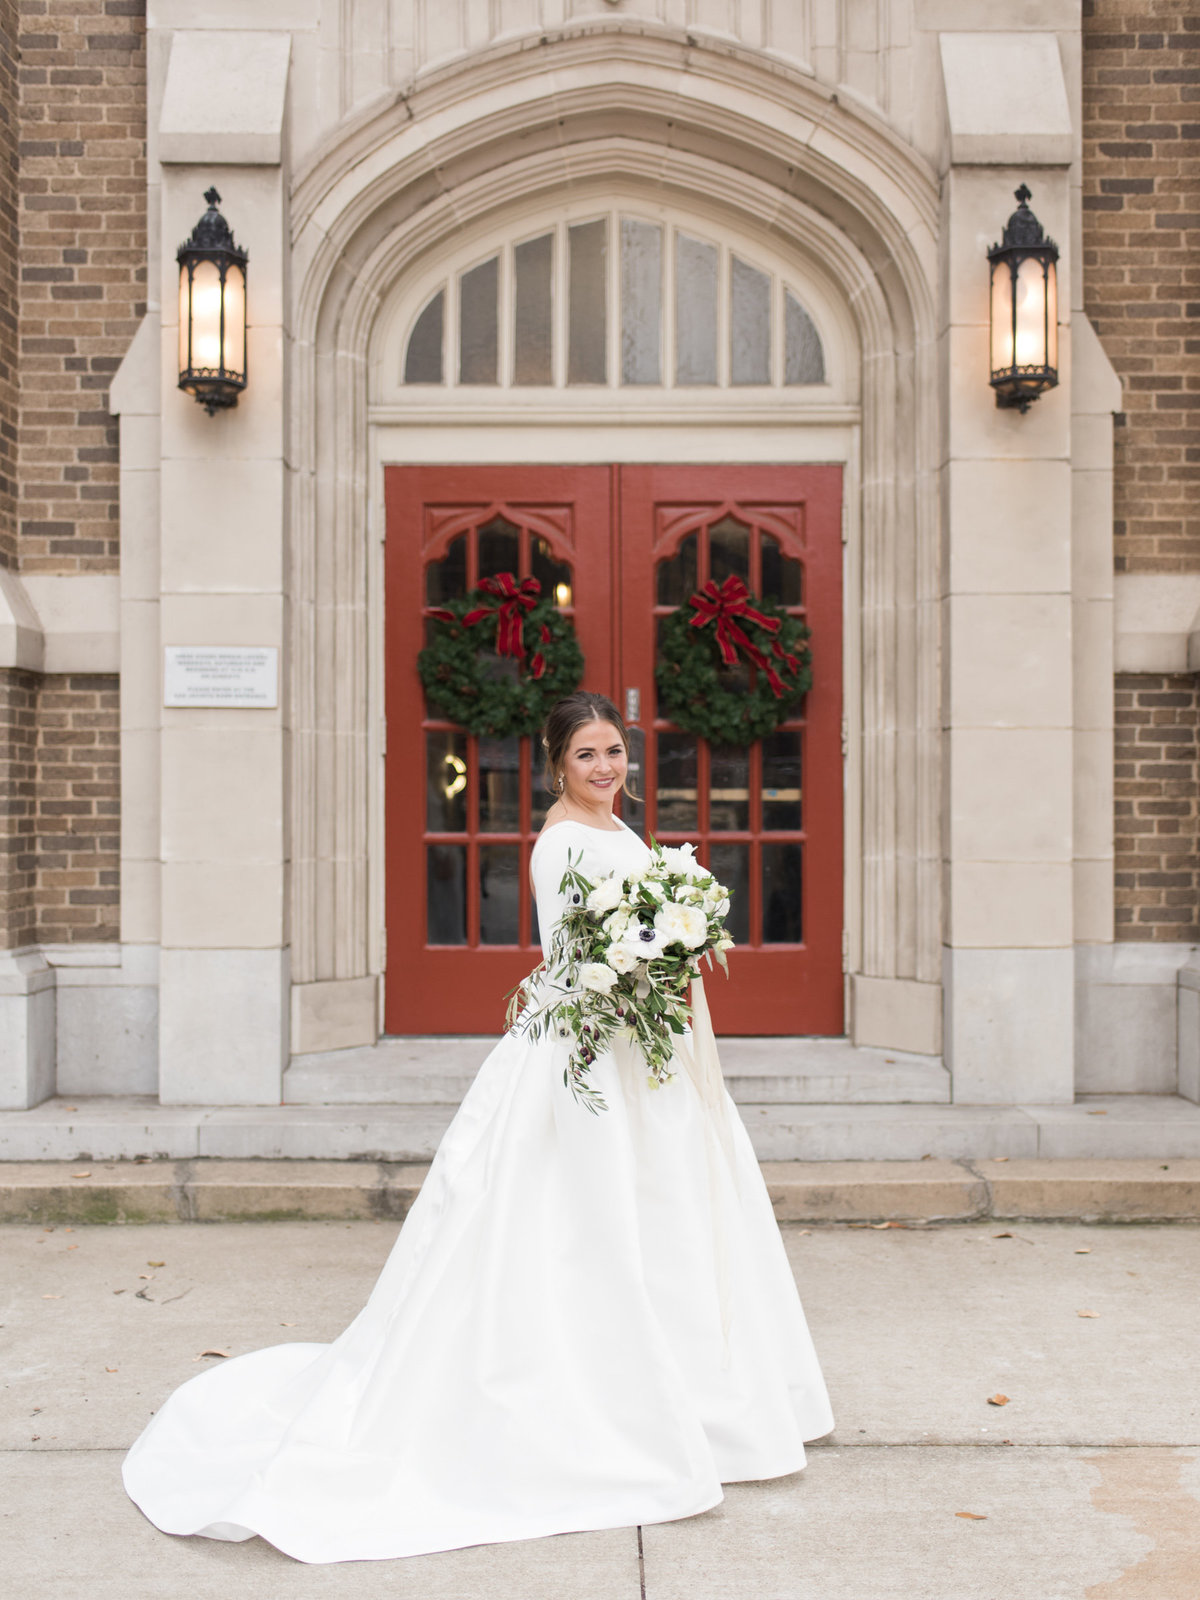 Courtney Hanson Photography - Festive Holiday Wedding in Dallas at Hickory Street Annex-0043